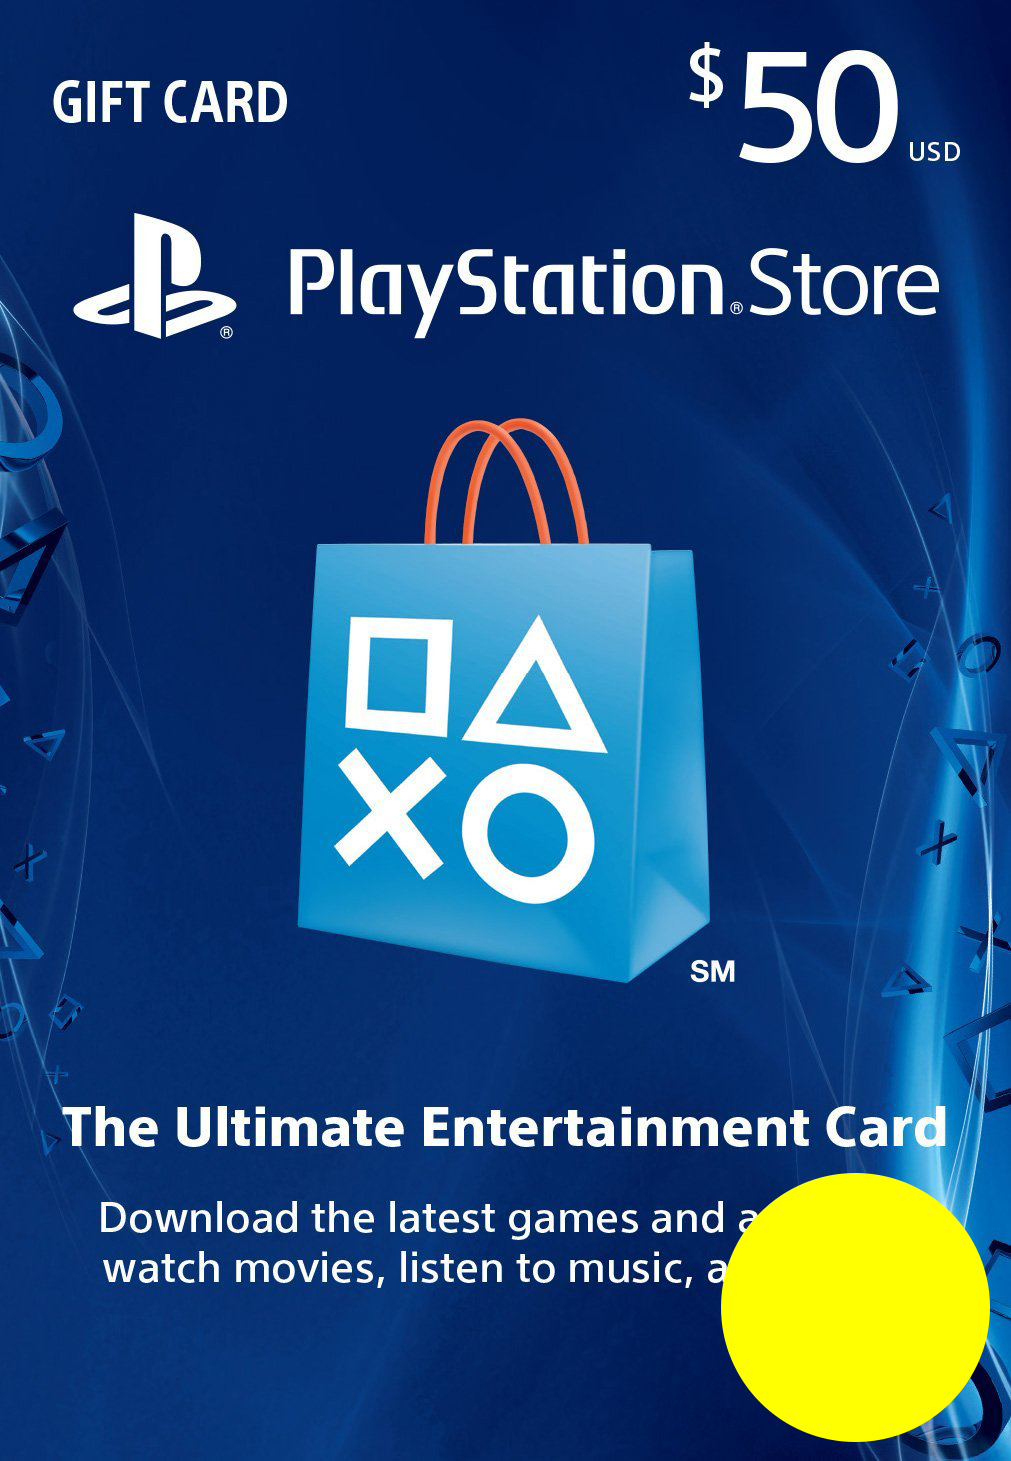 PSN Gift Card Code USA $50 PS4, PS3, PS Vita